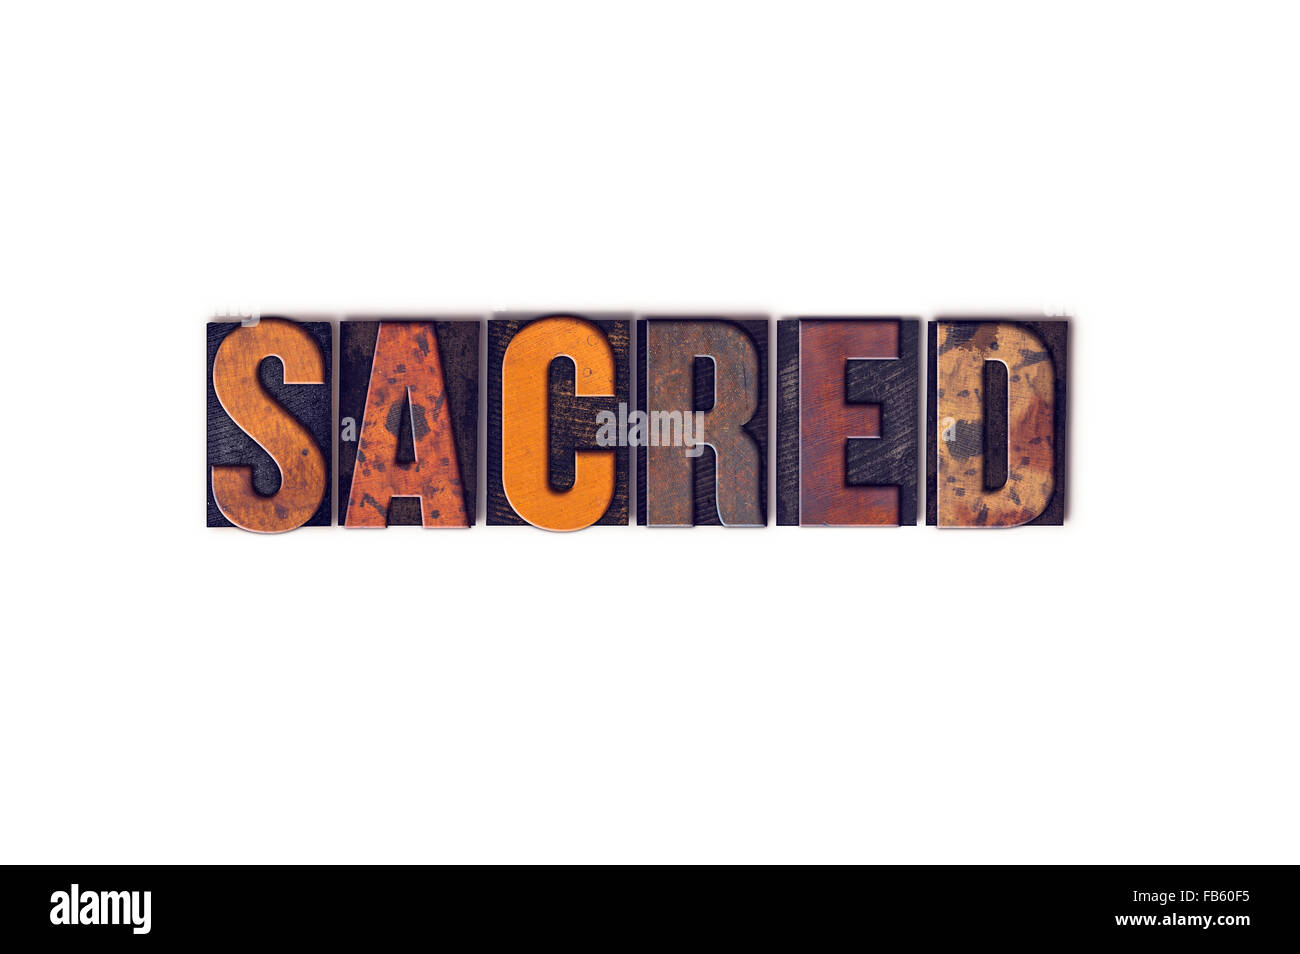 The word 'Sacred' written in isolated vintage wooden letterpress type on a white background. - Stock Image